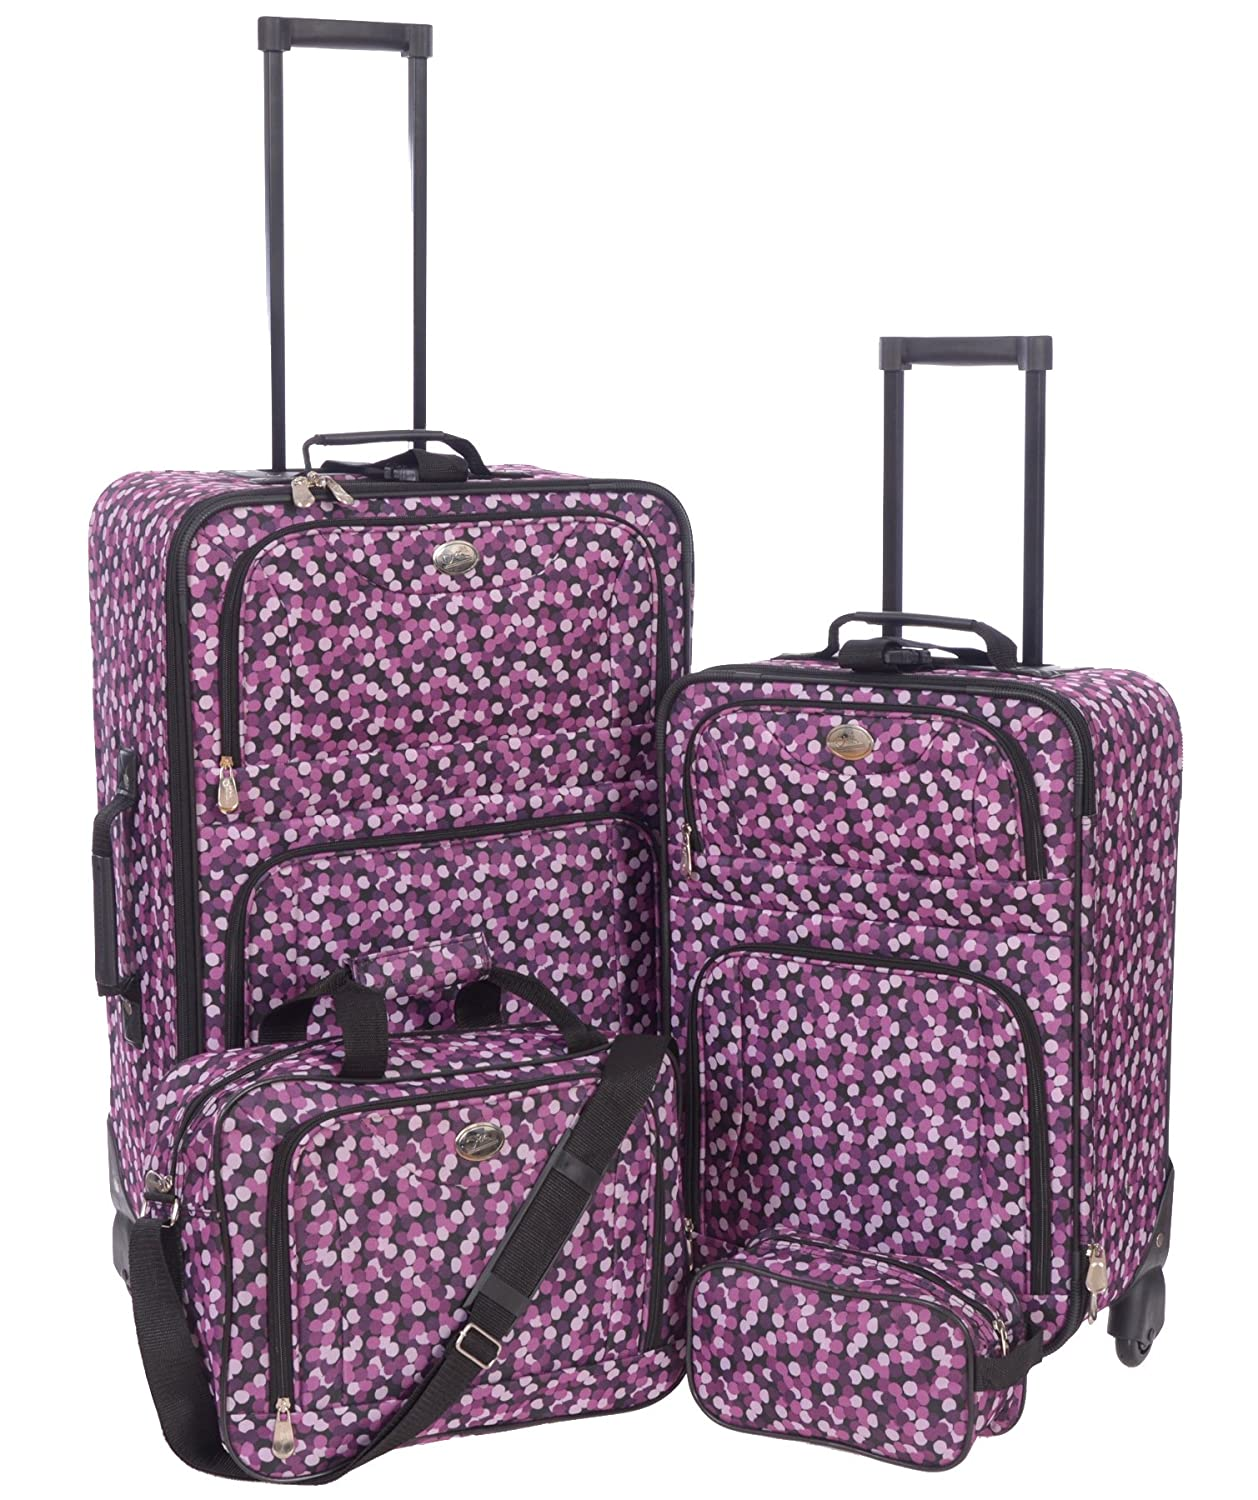 Jetstream Lightweight 4 Piece Fashion Luggage Set Including Travel Kit C0328_S4_MLT